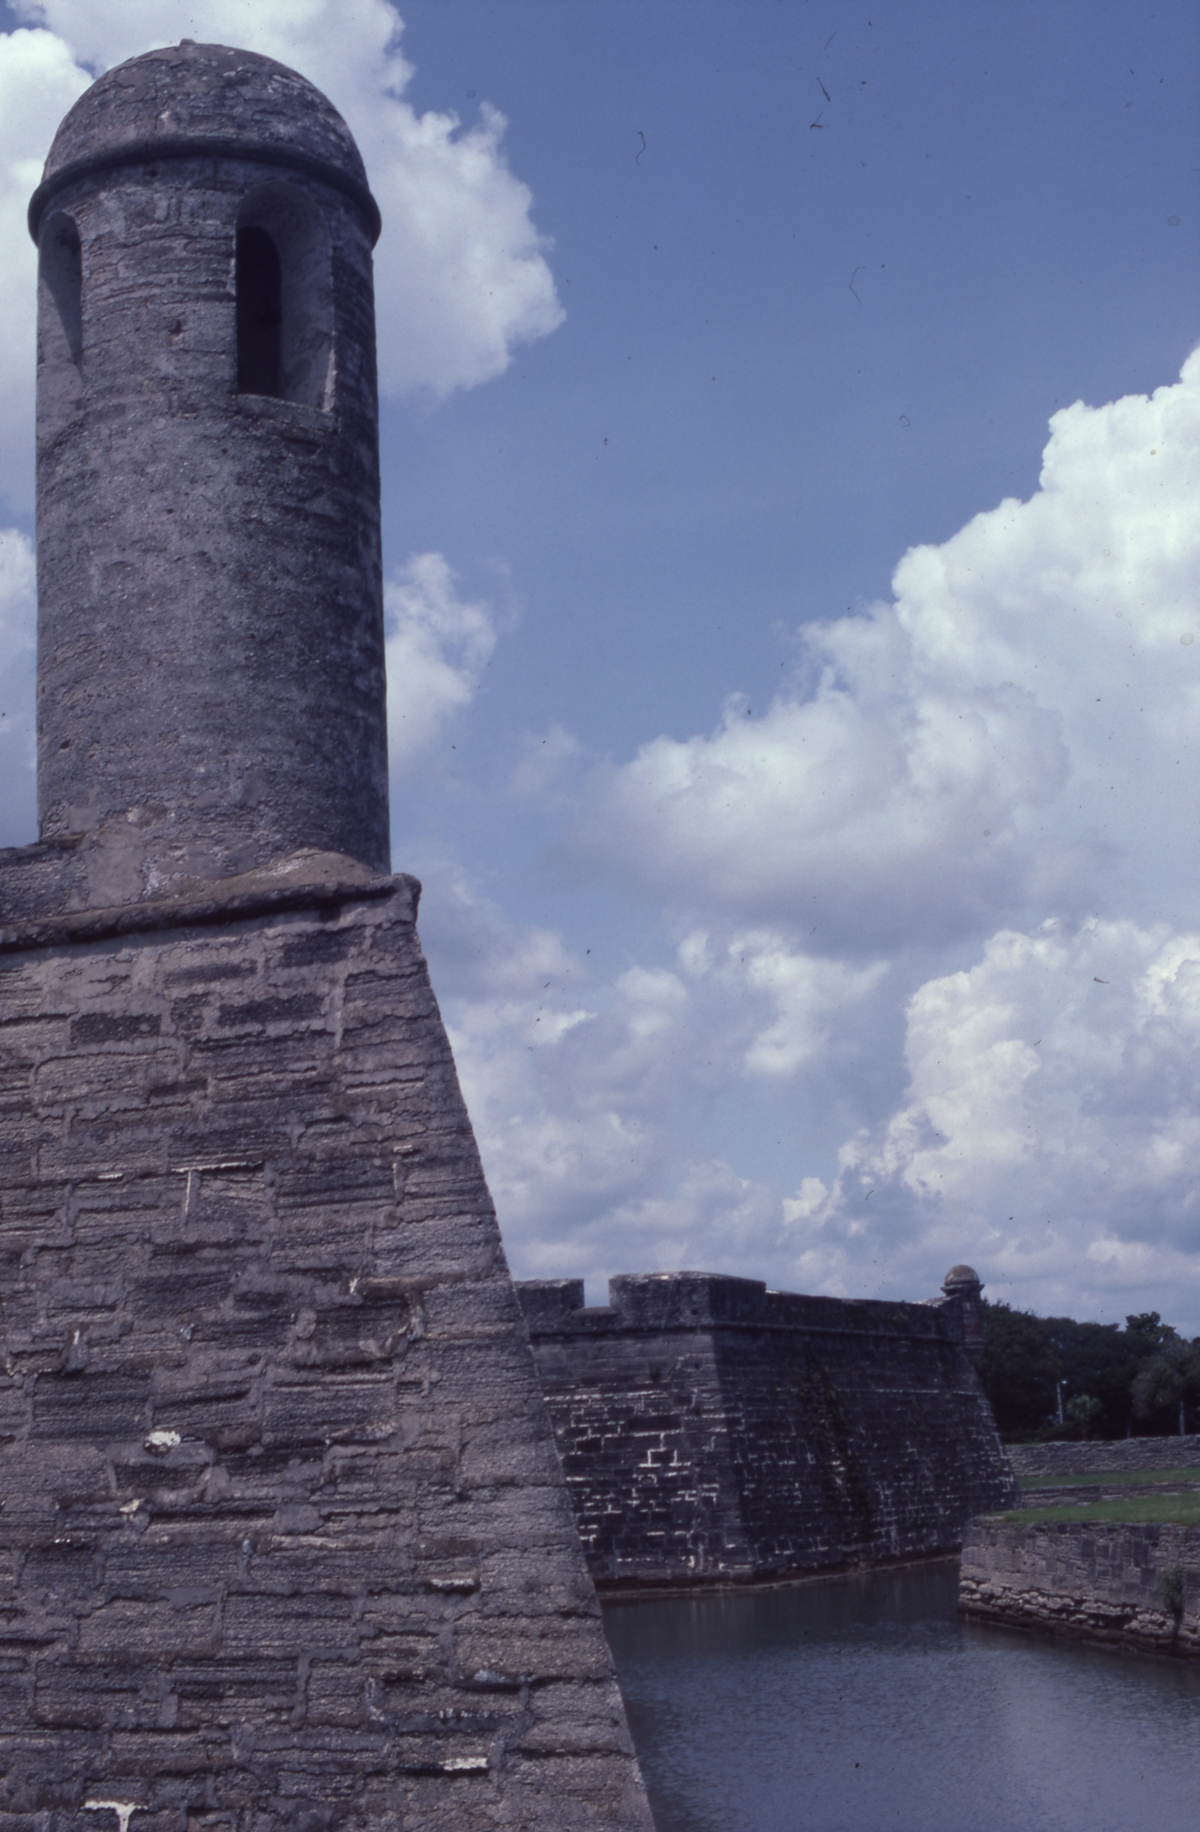 Watchtower, wall and moat at Castillo de San Marcos - Saint Augustine, Florida.